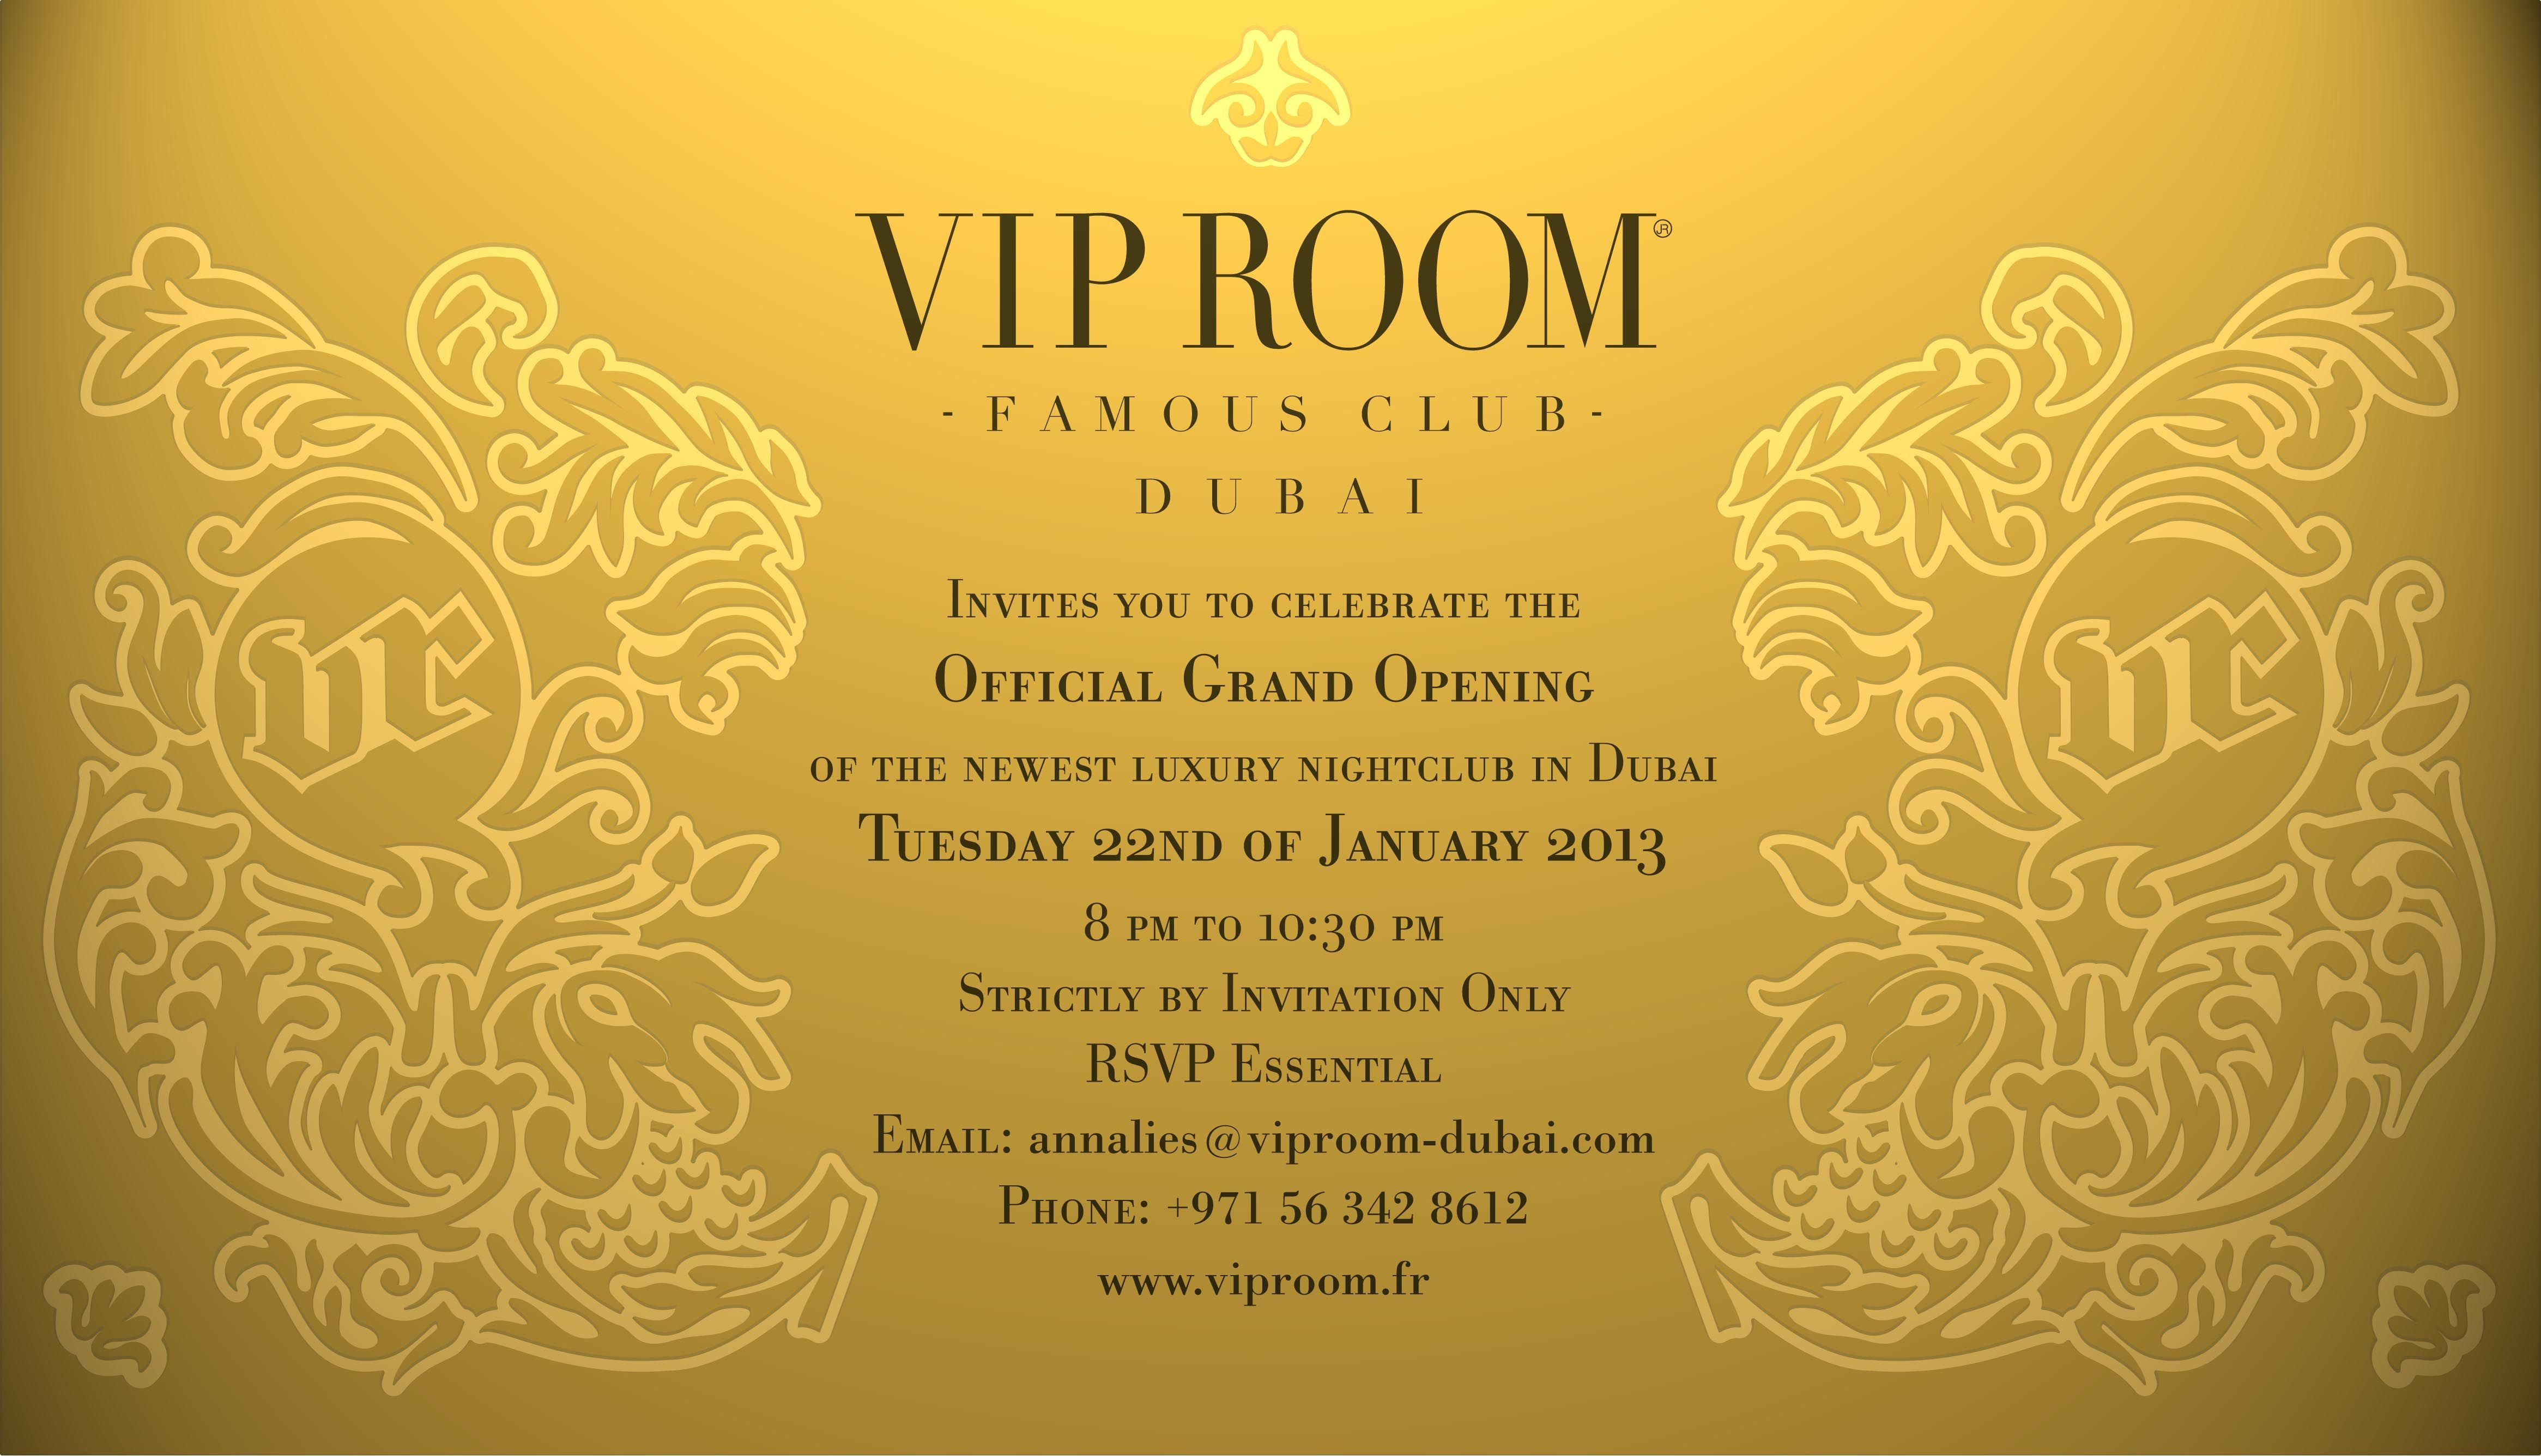 Pin By Vip Room Dubai On Official Grand Opening Press Event Event Invitation Invitations Grand Opening